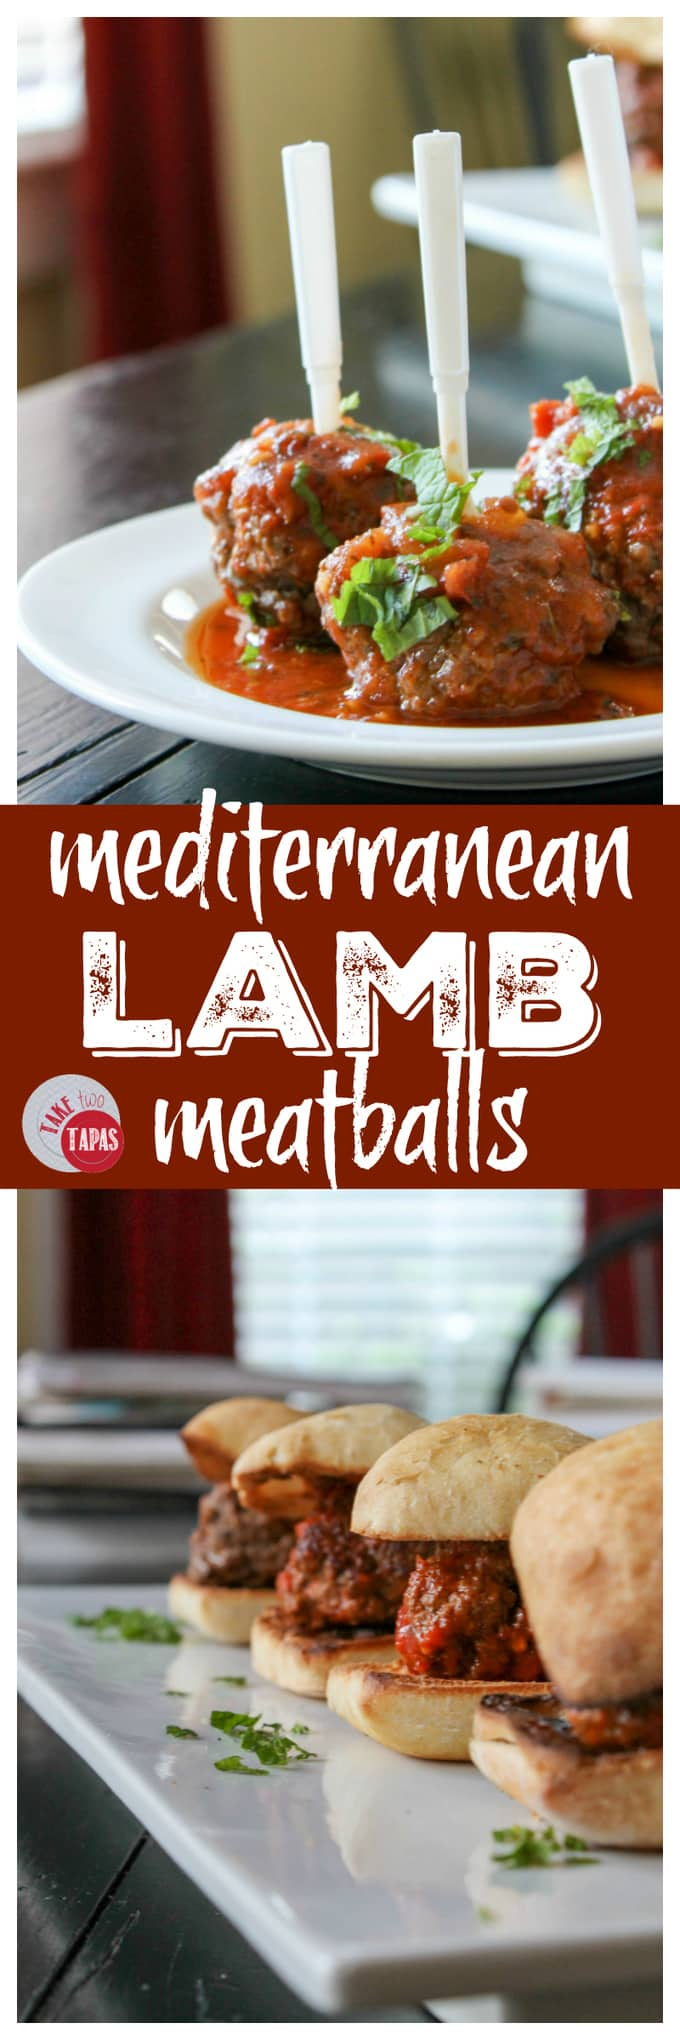 Mediterranean Lamb Meatballs for the win | Take Two Tapas | #Mediterranean #lamb #meatballs #tapas #TomatoSauce